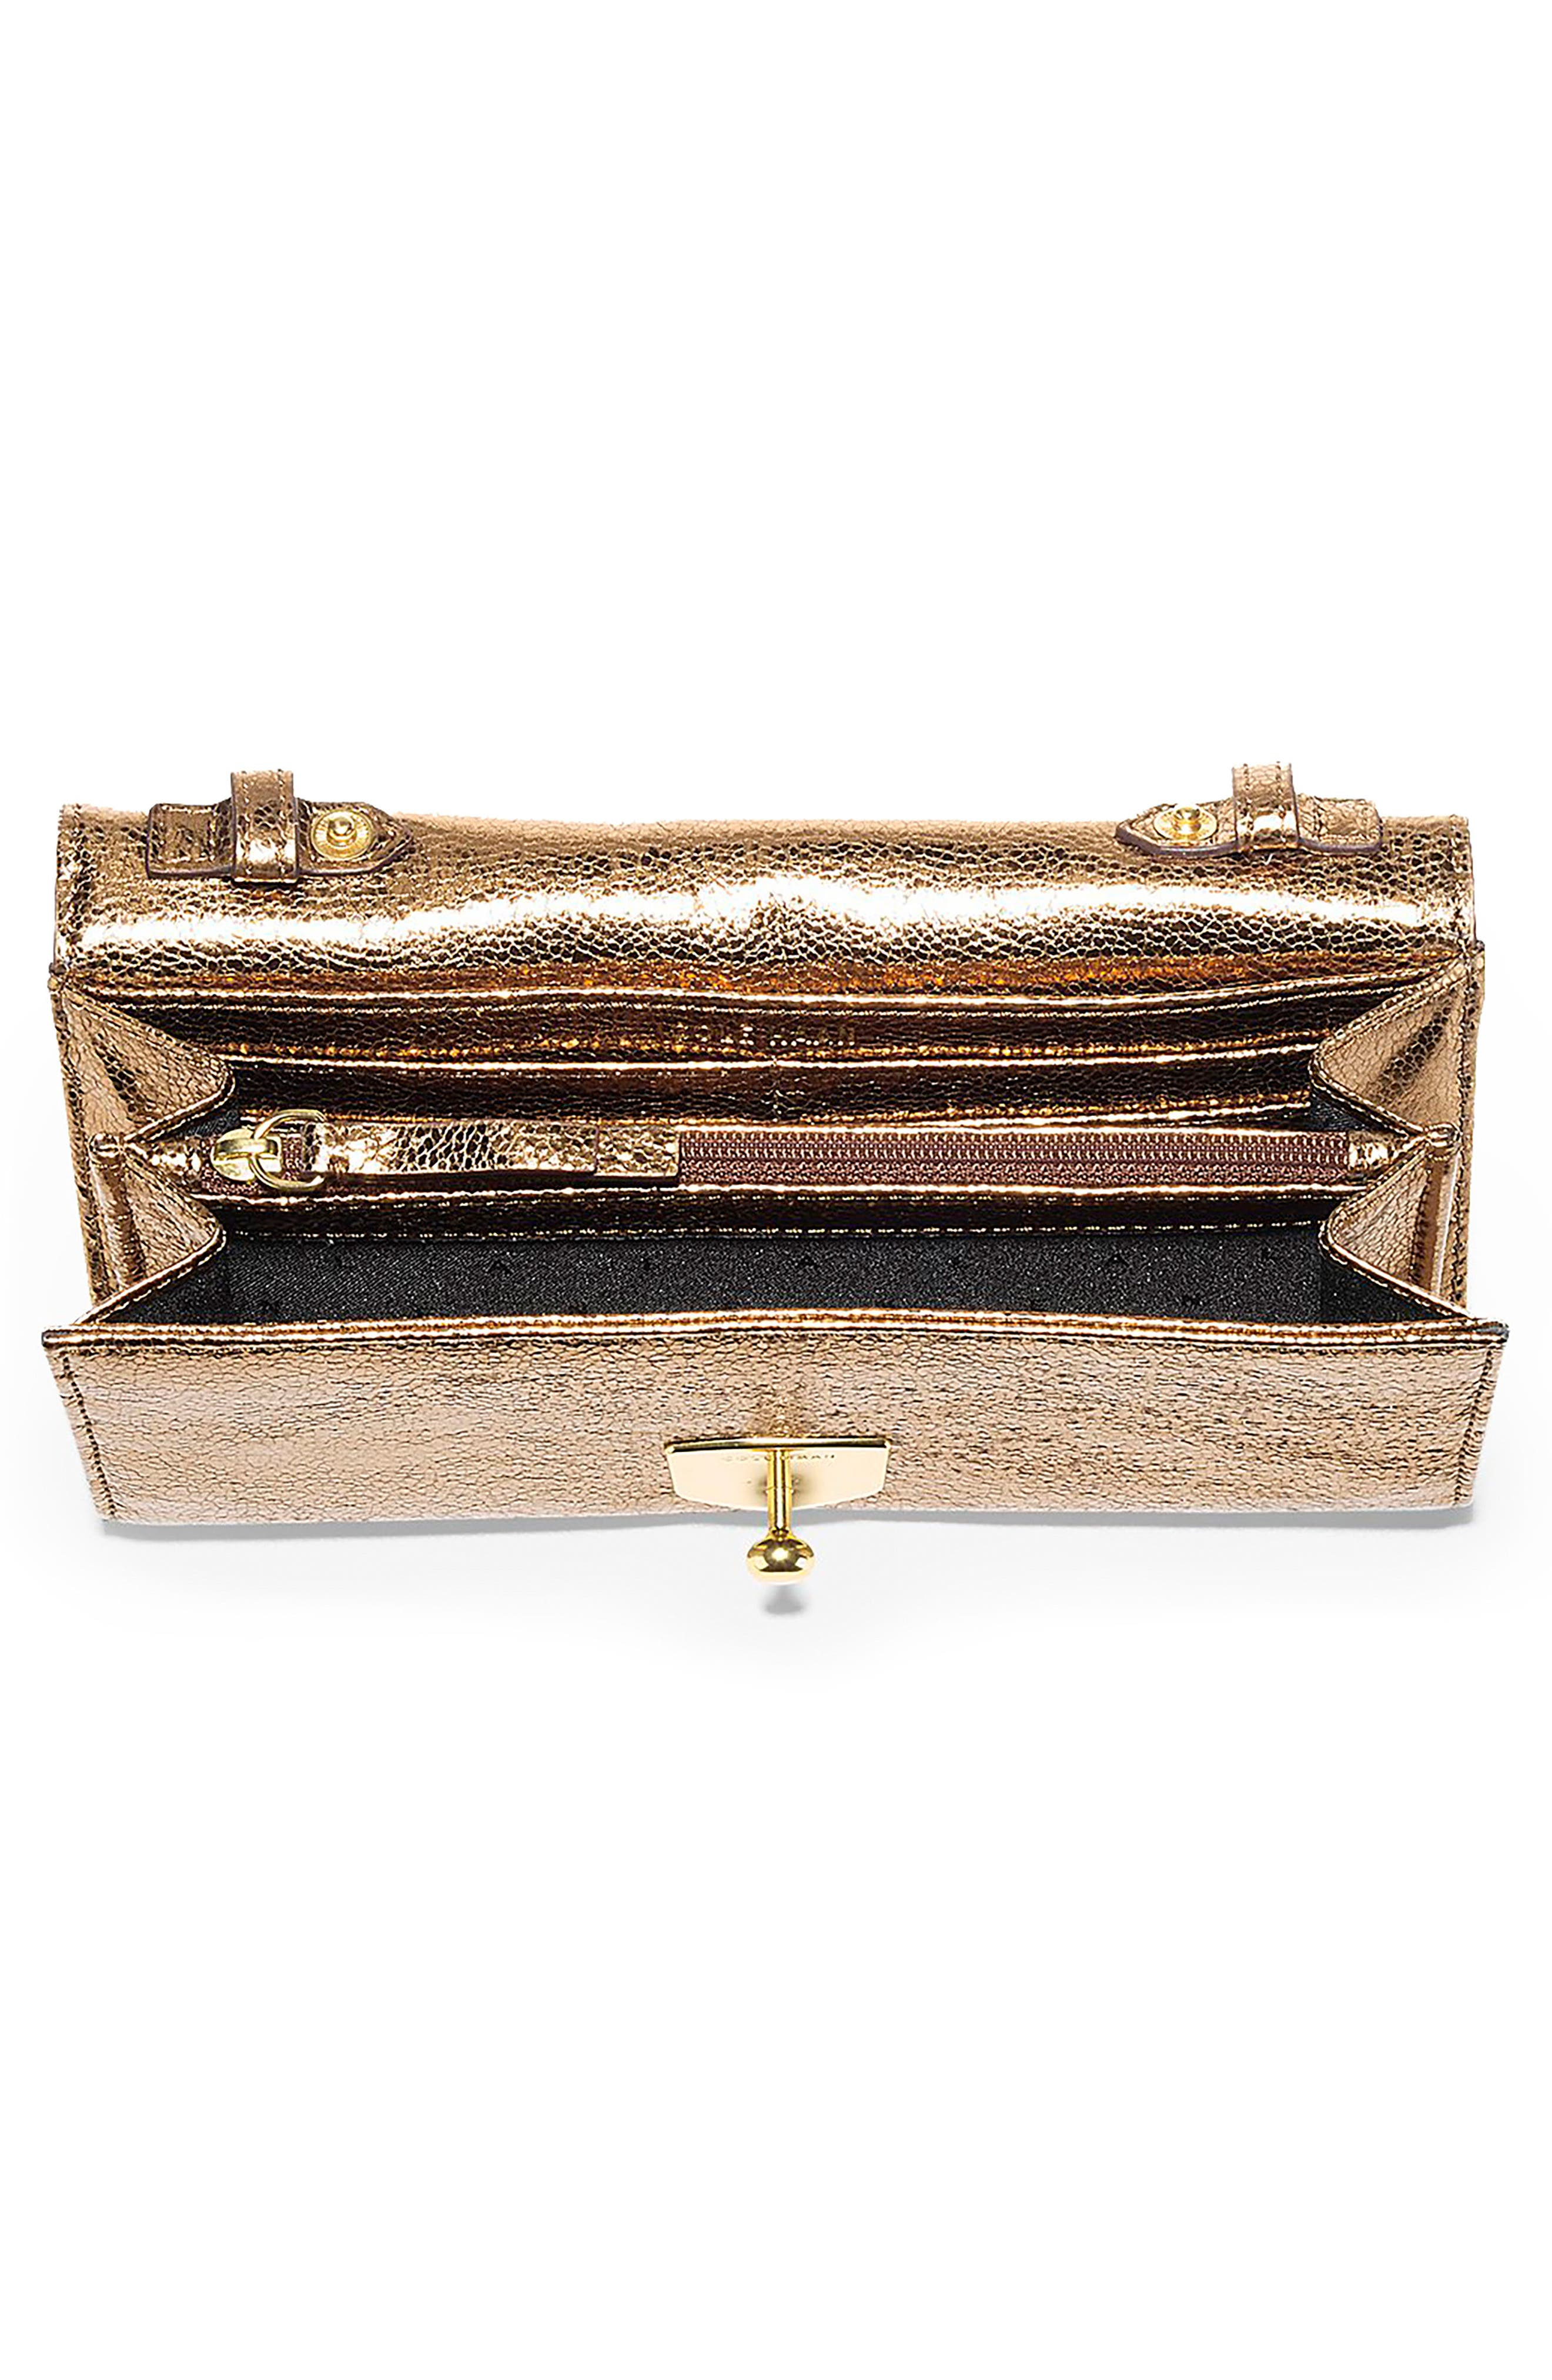 Marli Studded Metallic Leather Convertible Smartphone Clutch,                             Alternate thumbnail 6, color,